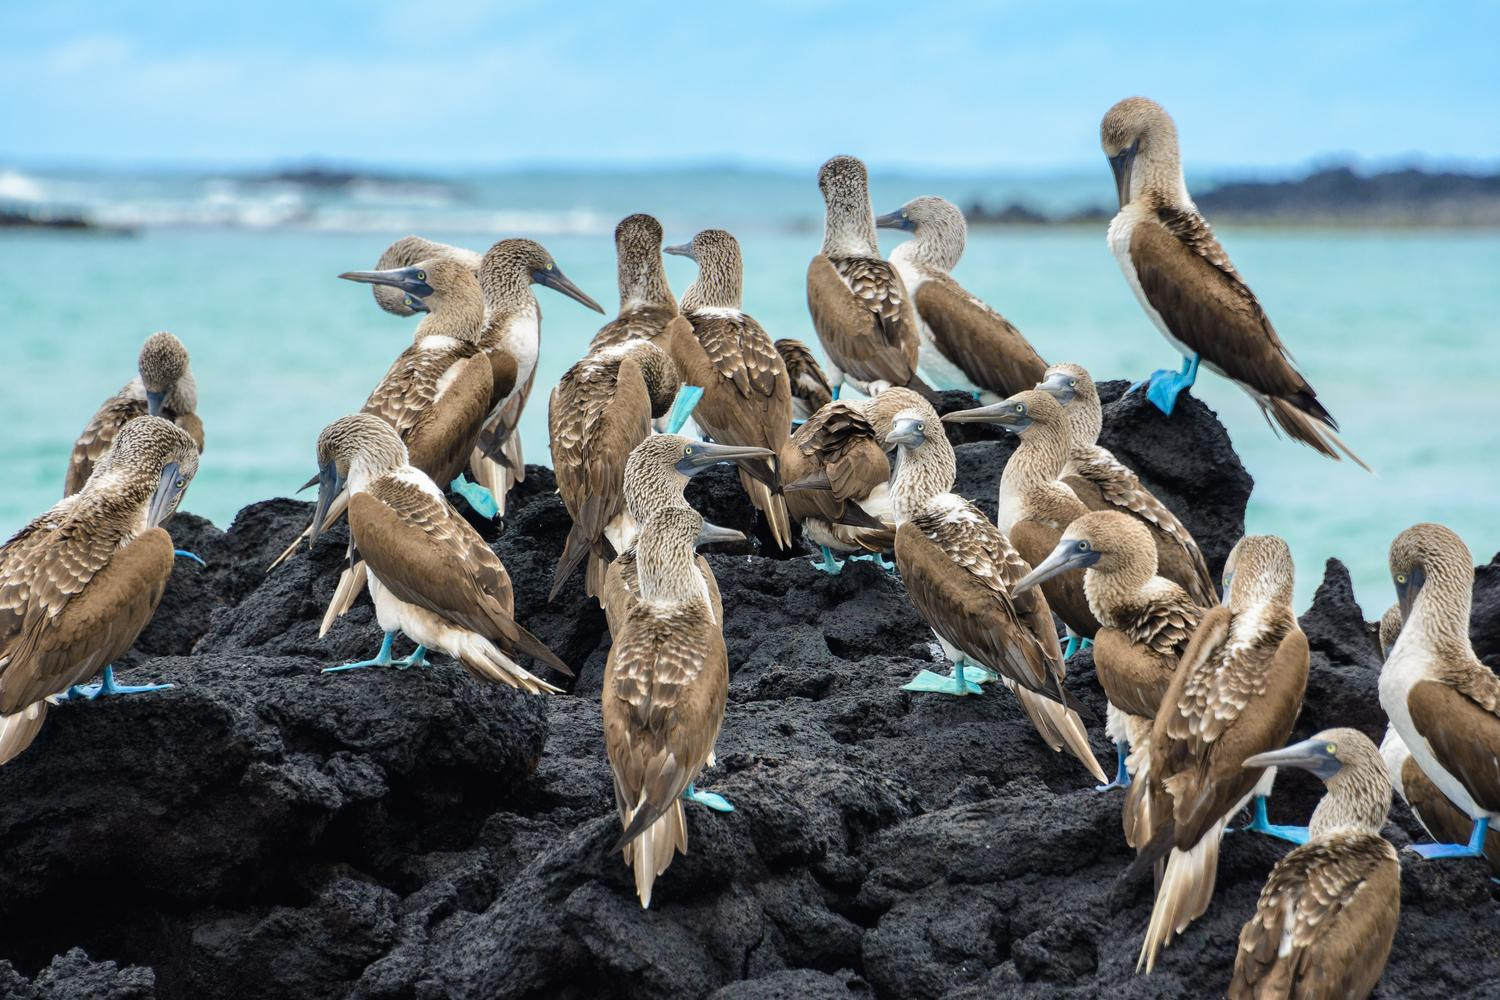 Explore the Galapagos Islands by boat, kayak, bike and on foot!